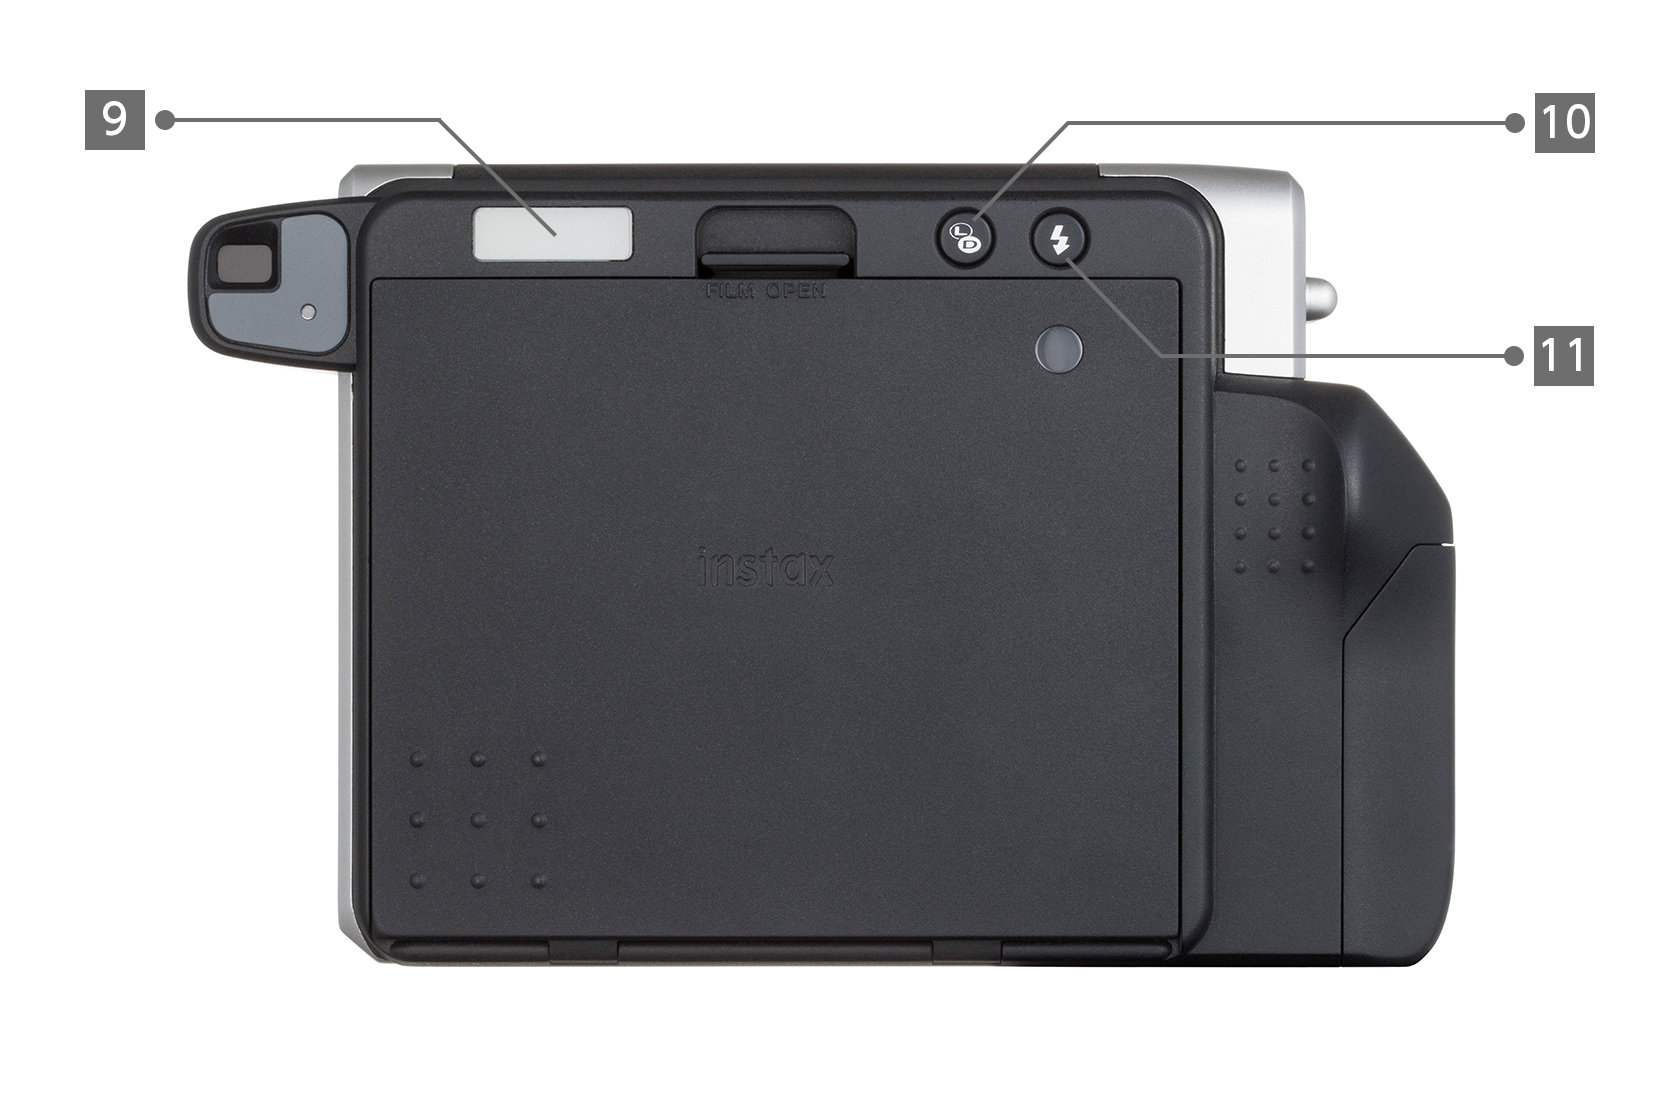 [photo] Rear view of a Black Instax Wide 300 with different parts labeled 9 through 11